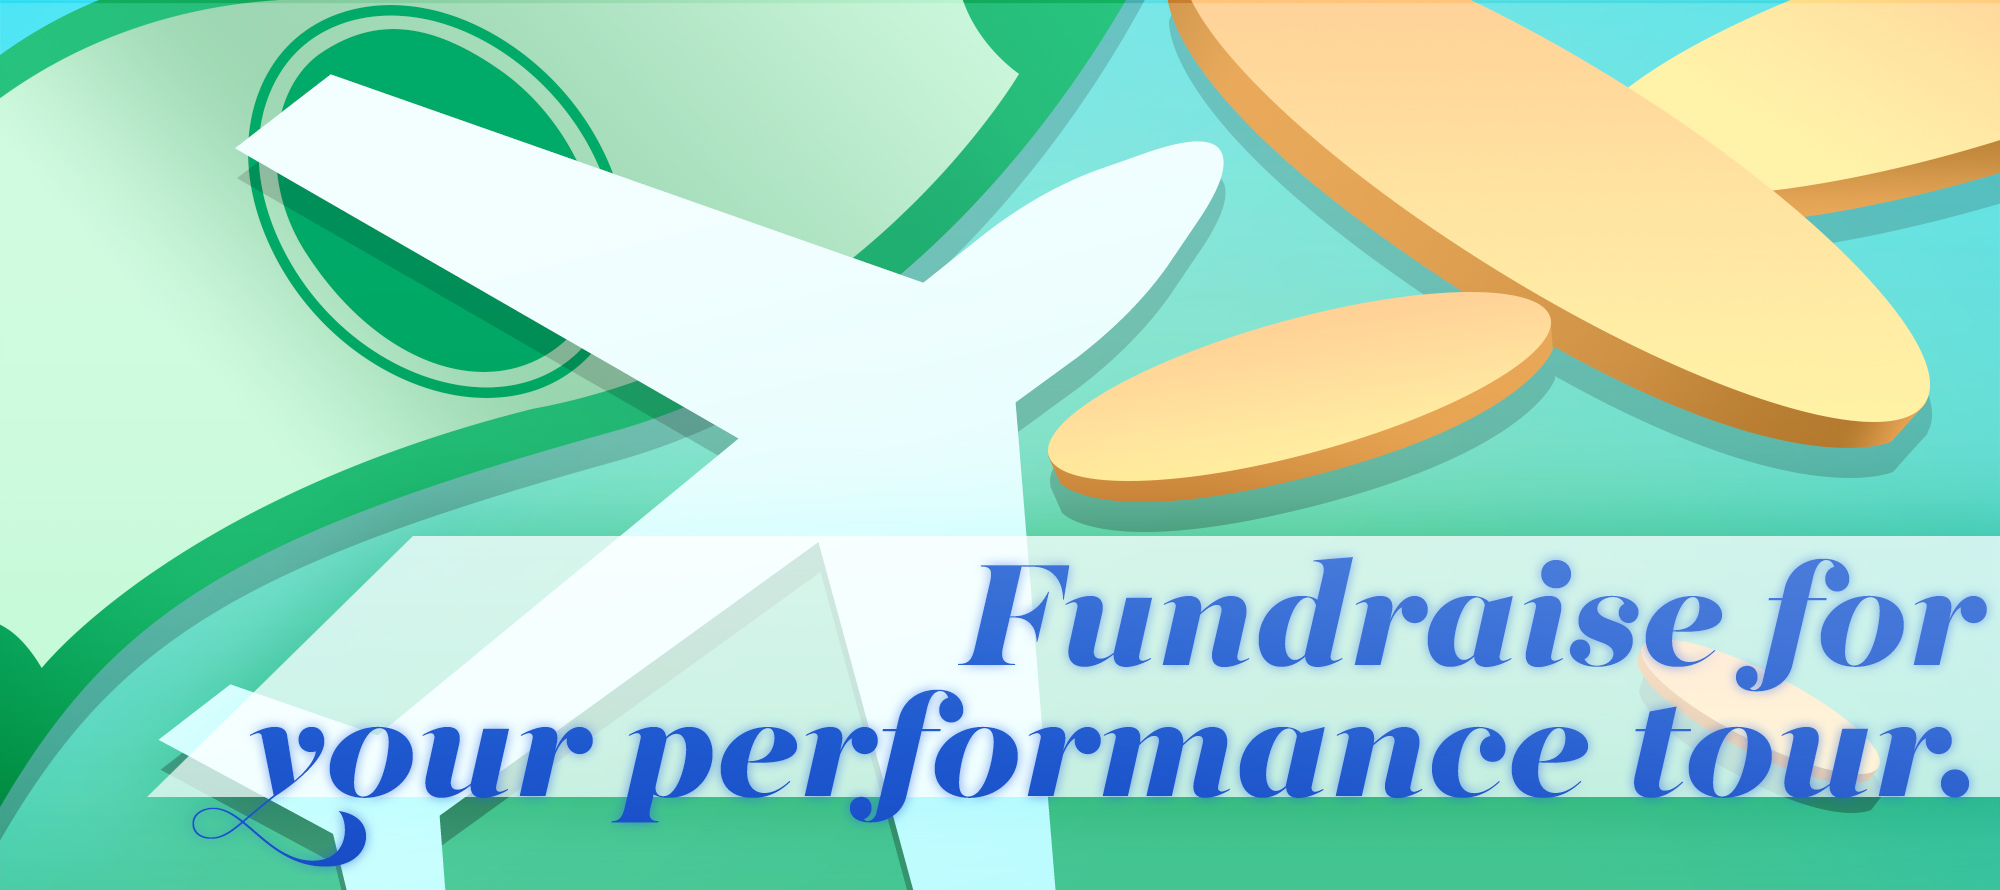 Myrrh: Fundraise for your performance tour